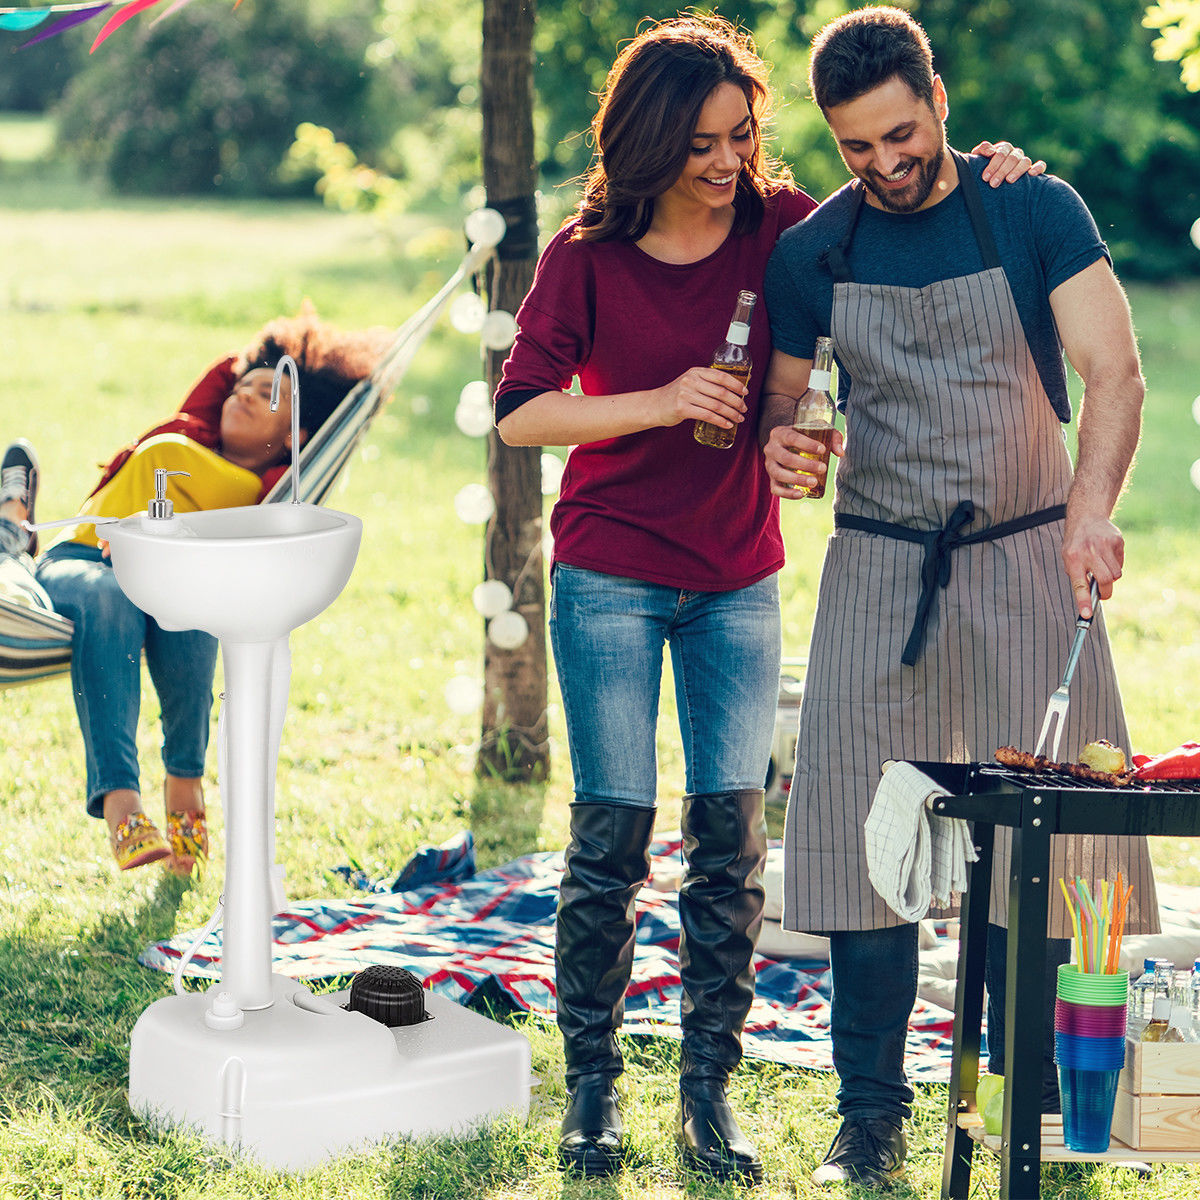 Zimtown 19L Outdoor Wash Basin Sink, Water Tank Faucet Removable, for Portable Tiolet and Camping, Perfect for BBQ, Patio, Backyard, Garden Use